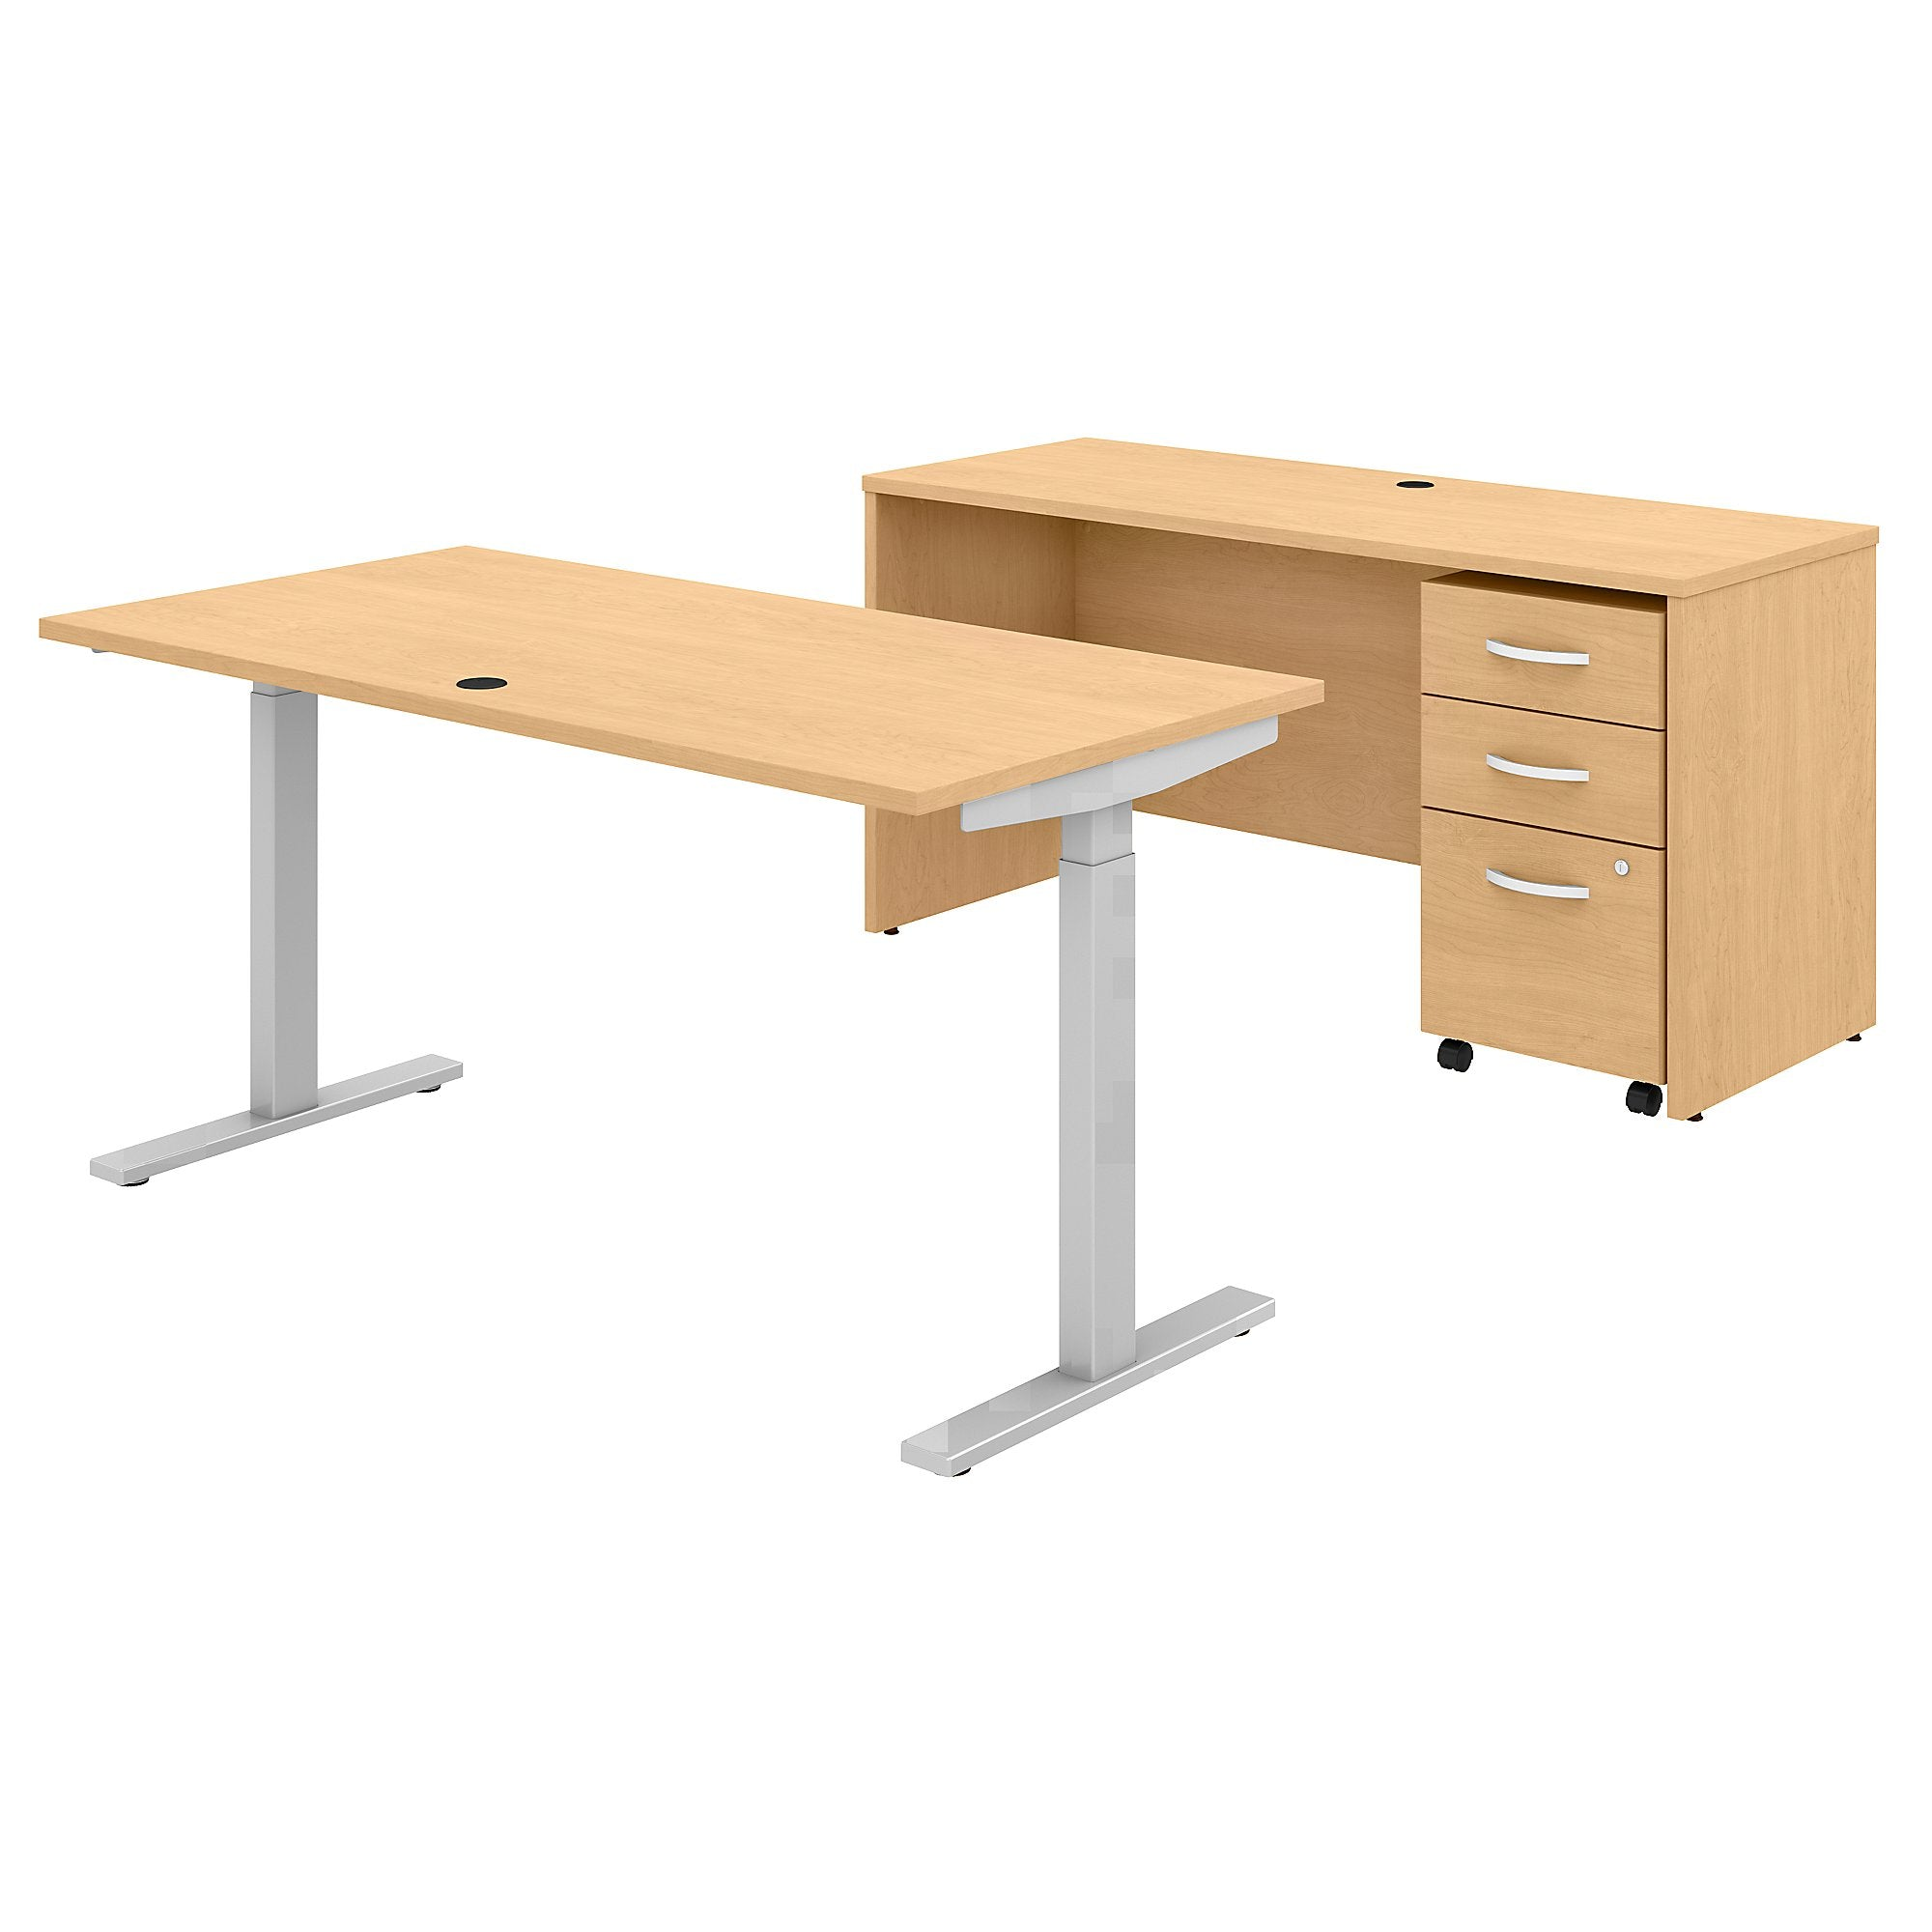 Adjustable Standing Desk Credenza & Mobile File Cabinet